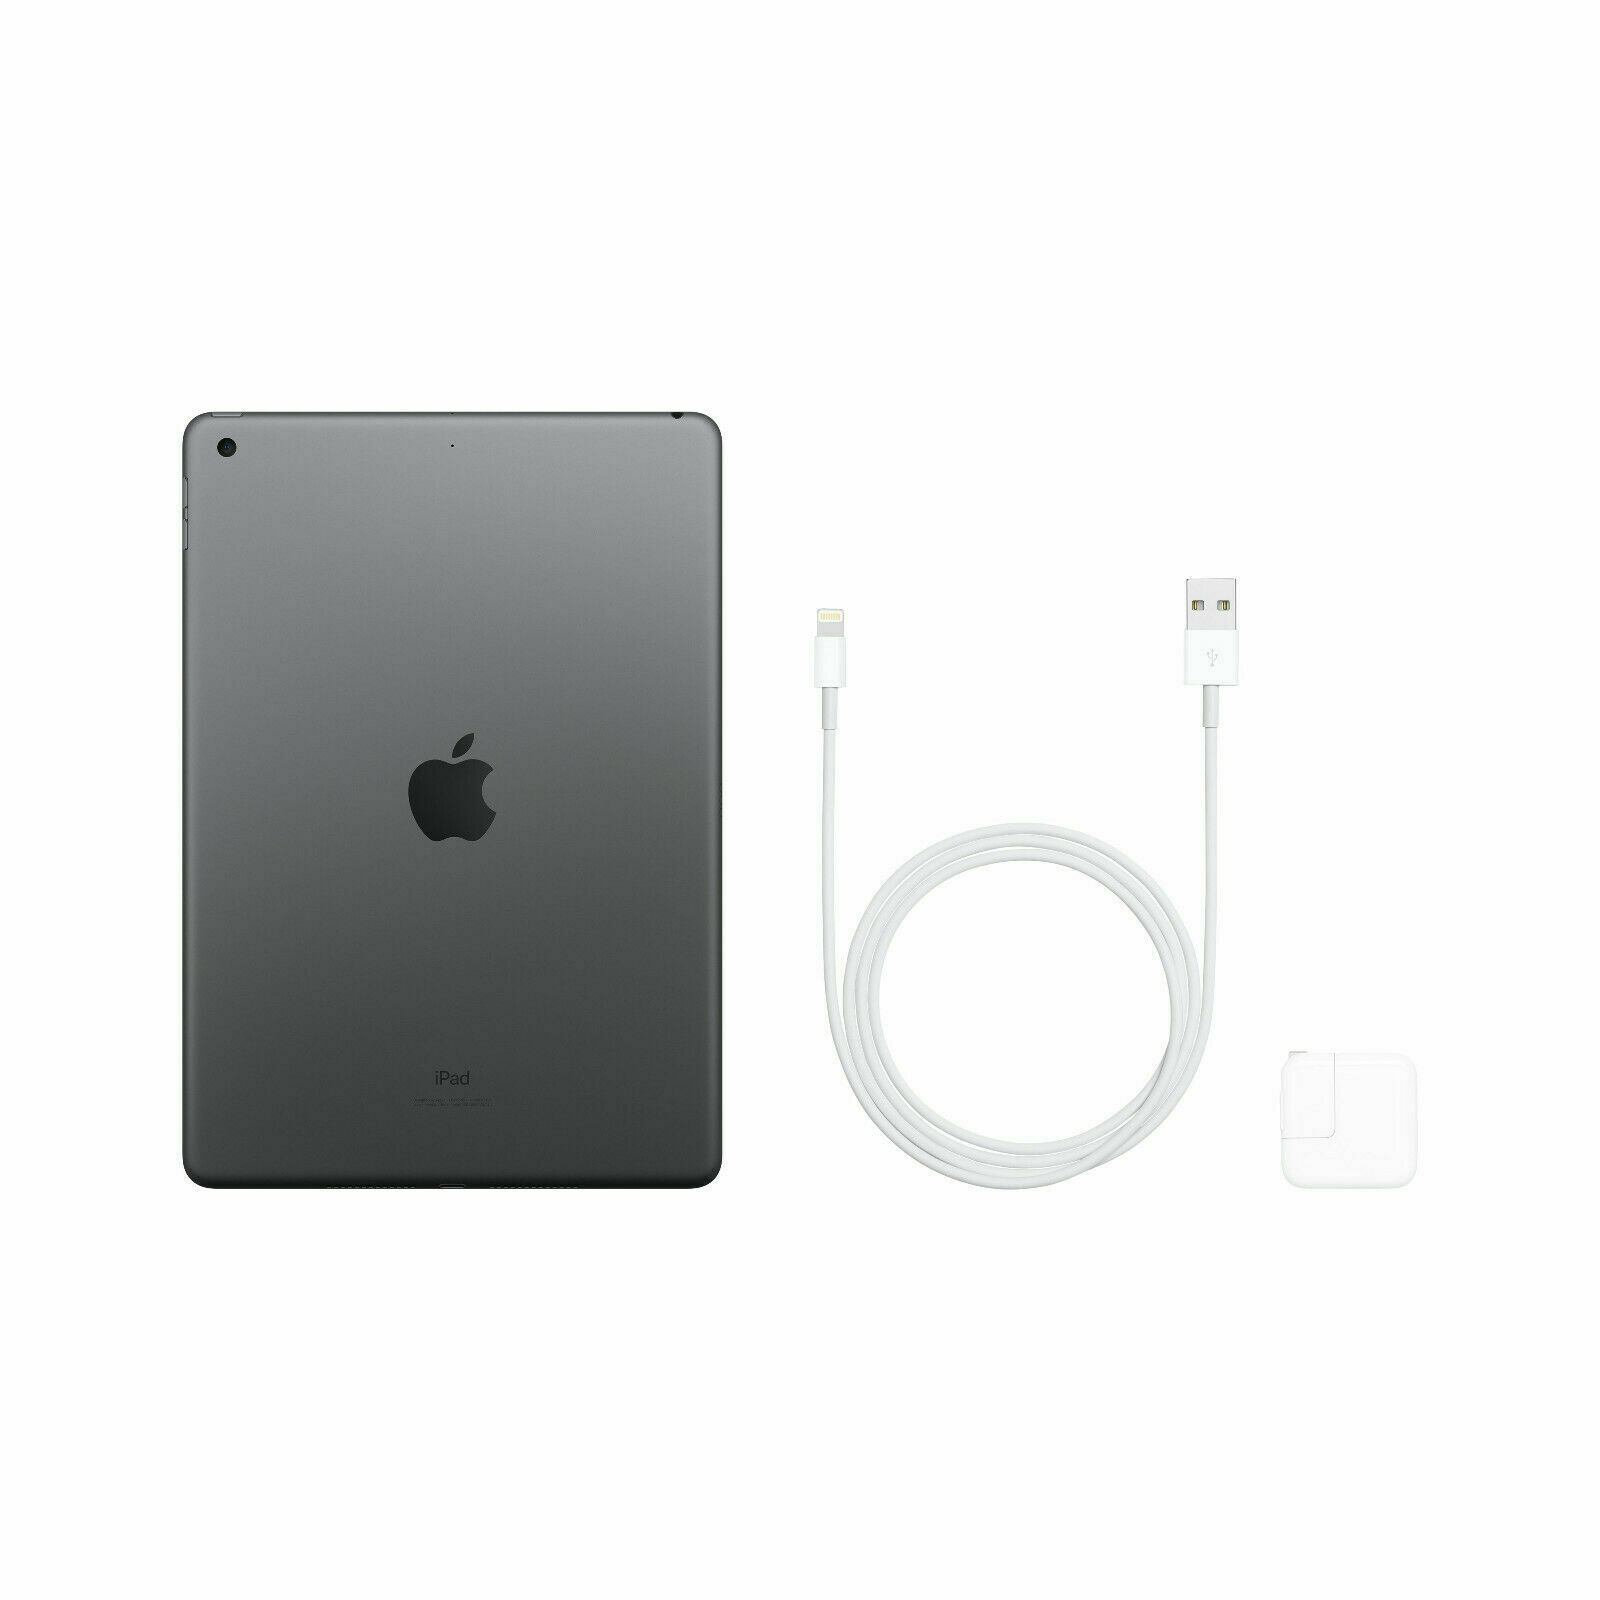 NEW 2020 Apple iPad 10.2 8th Gen Retina Display 32GB WiFi Siri TouchID. Buy it now for 409.99